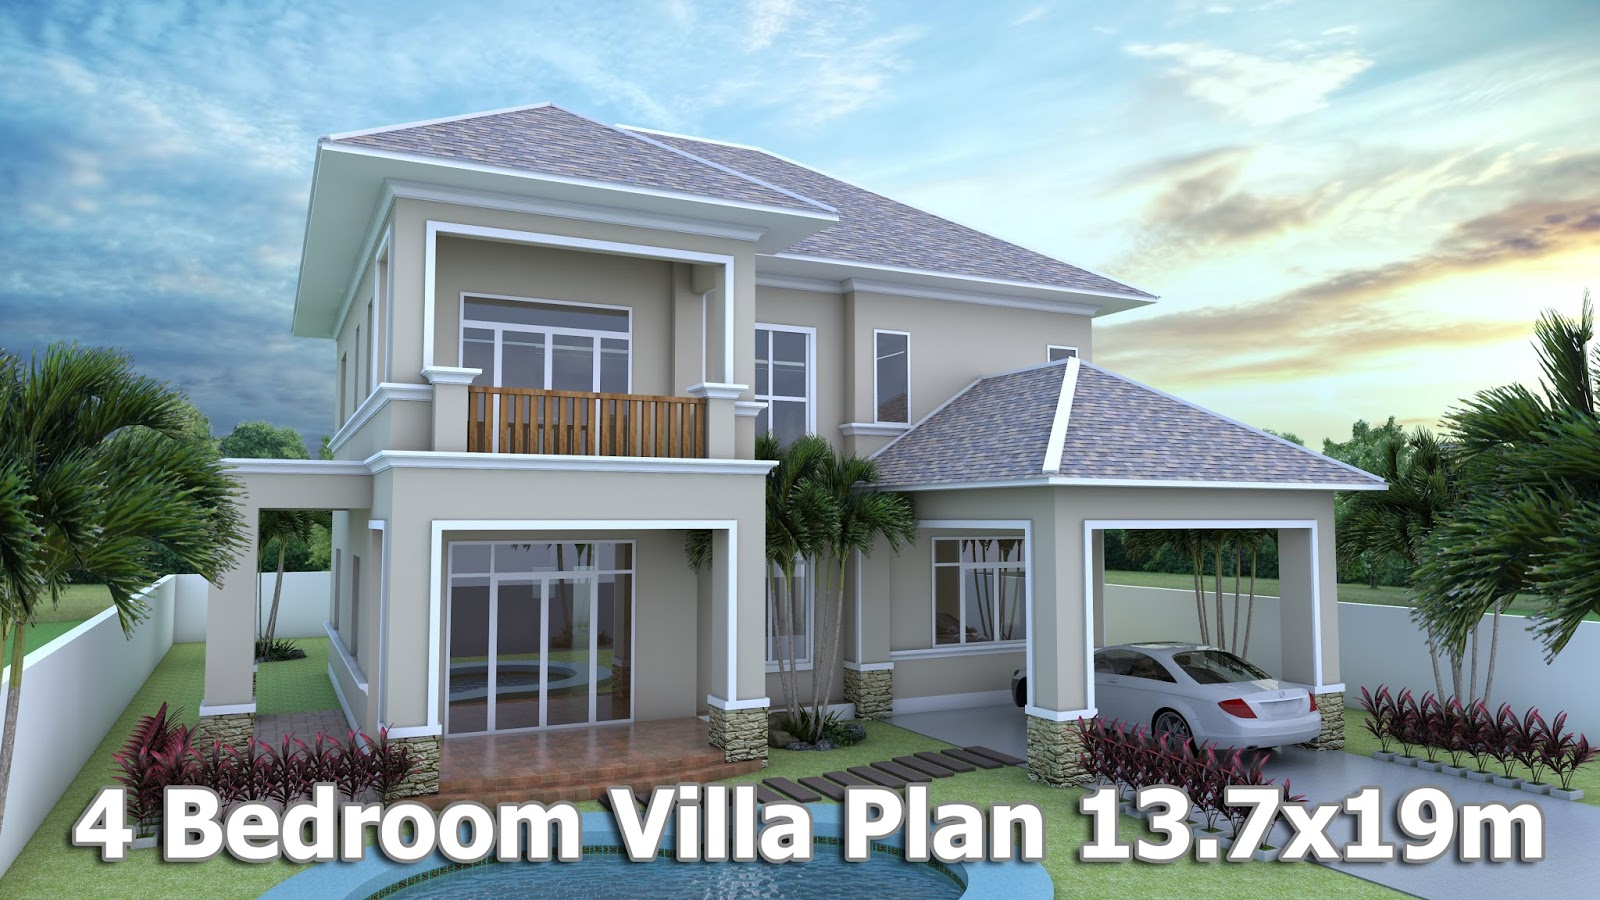 Home Design 3d Sketchup Villa Plan 13.7x19m | SaM ArchitecT